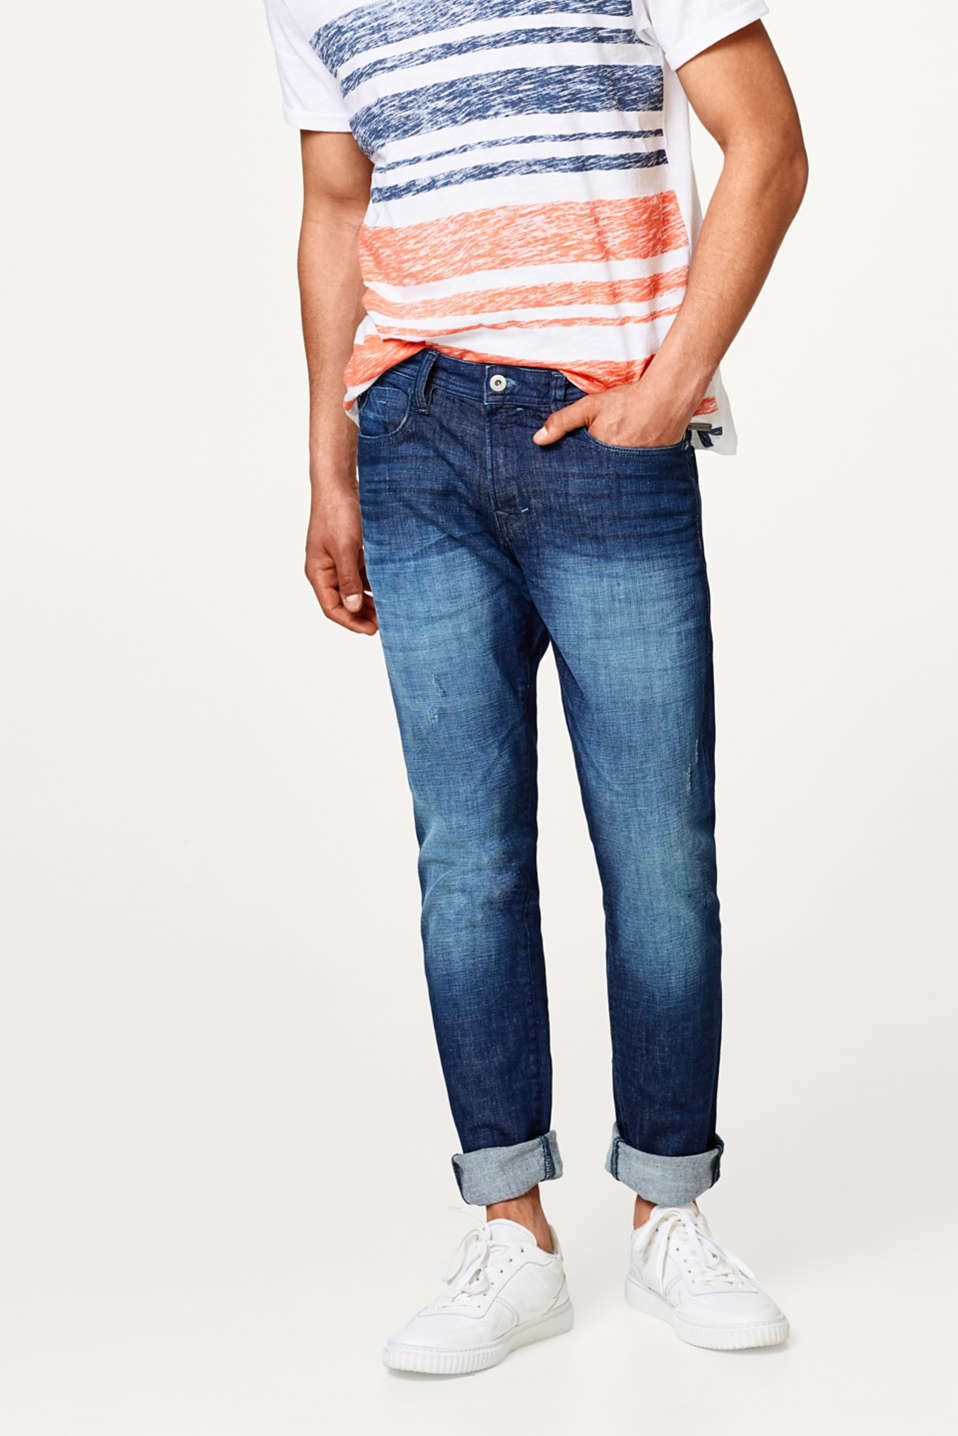 edc - Stretch jeans in a vintage wash